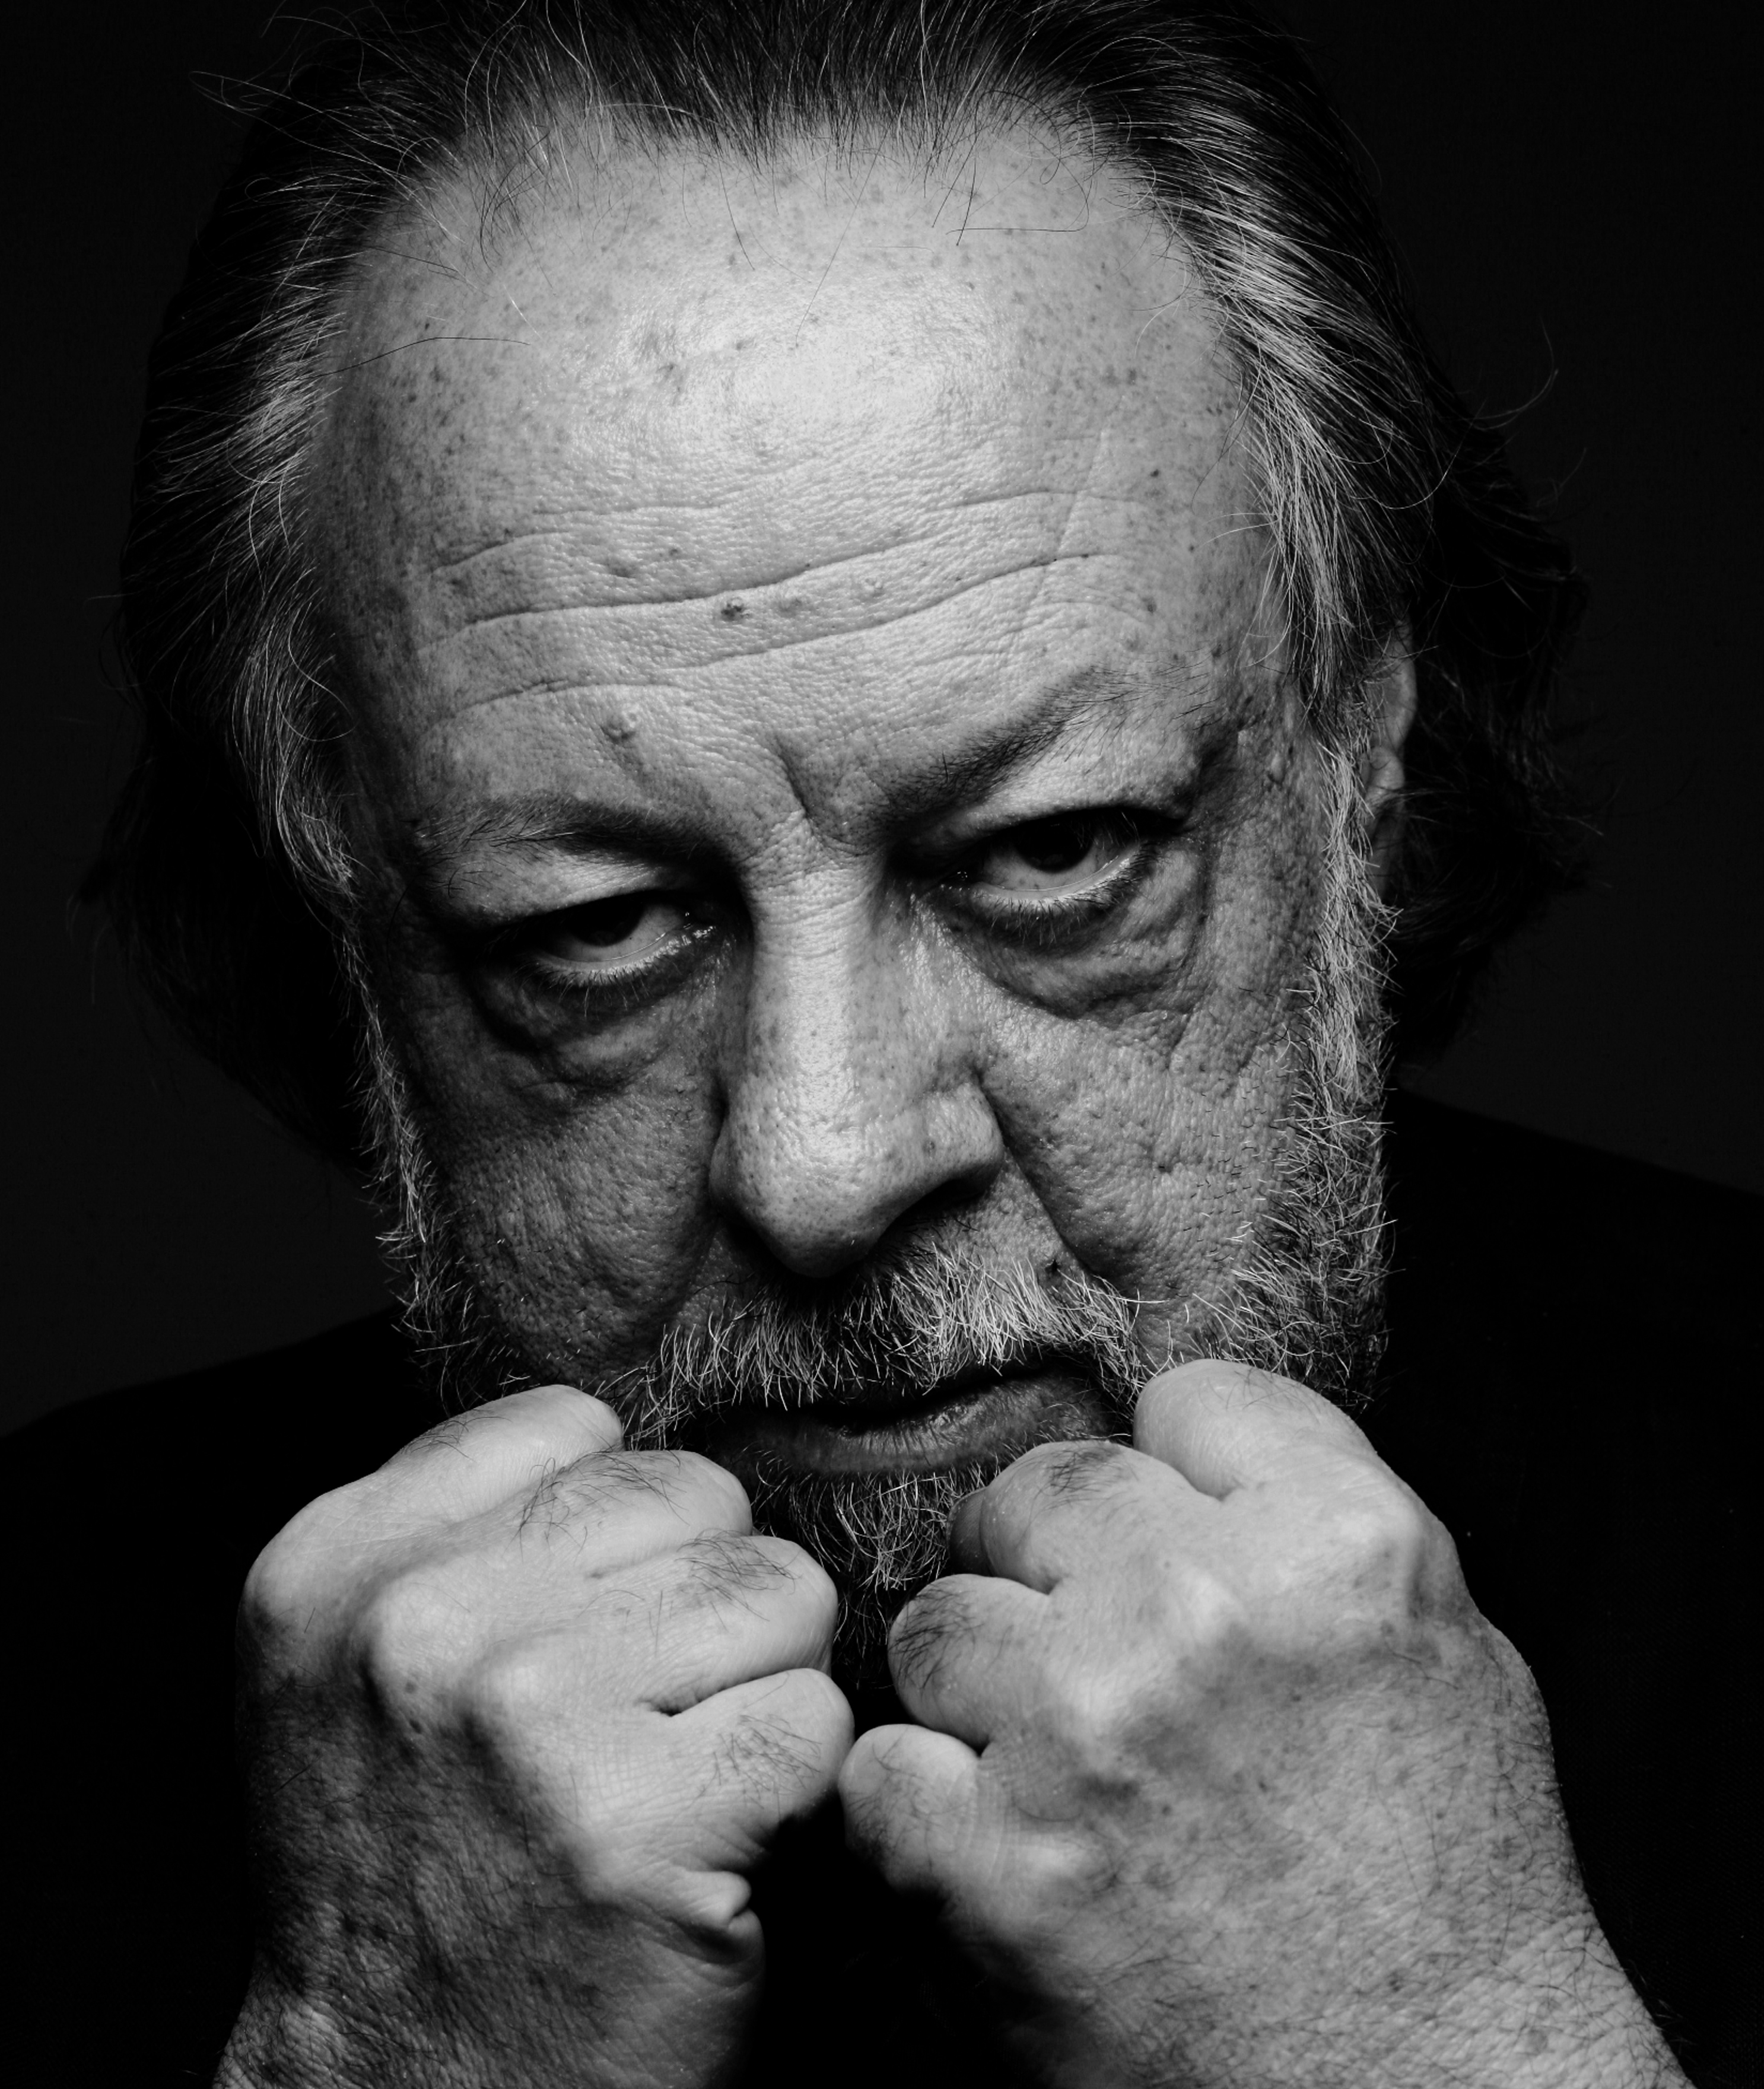 Potrait of Ricky Jay